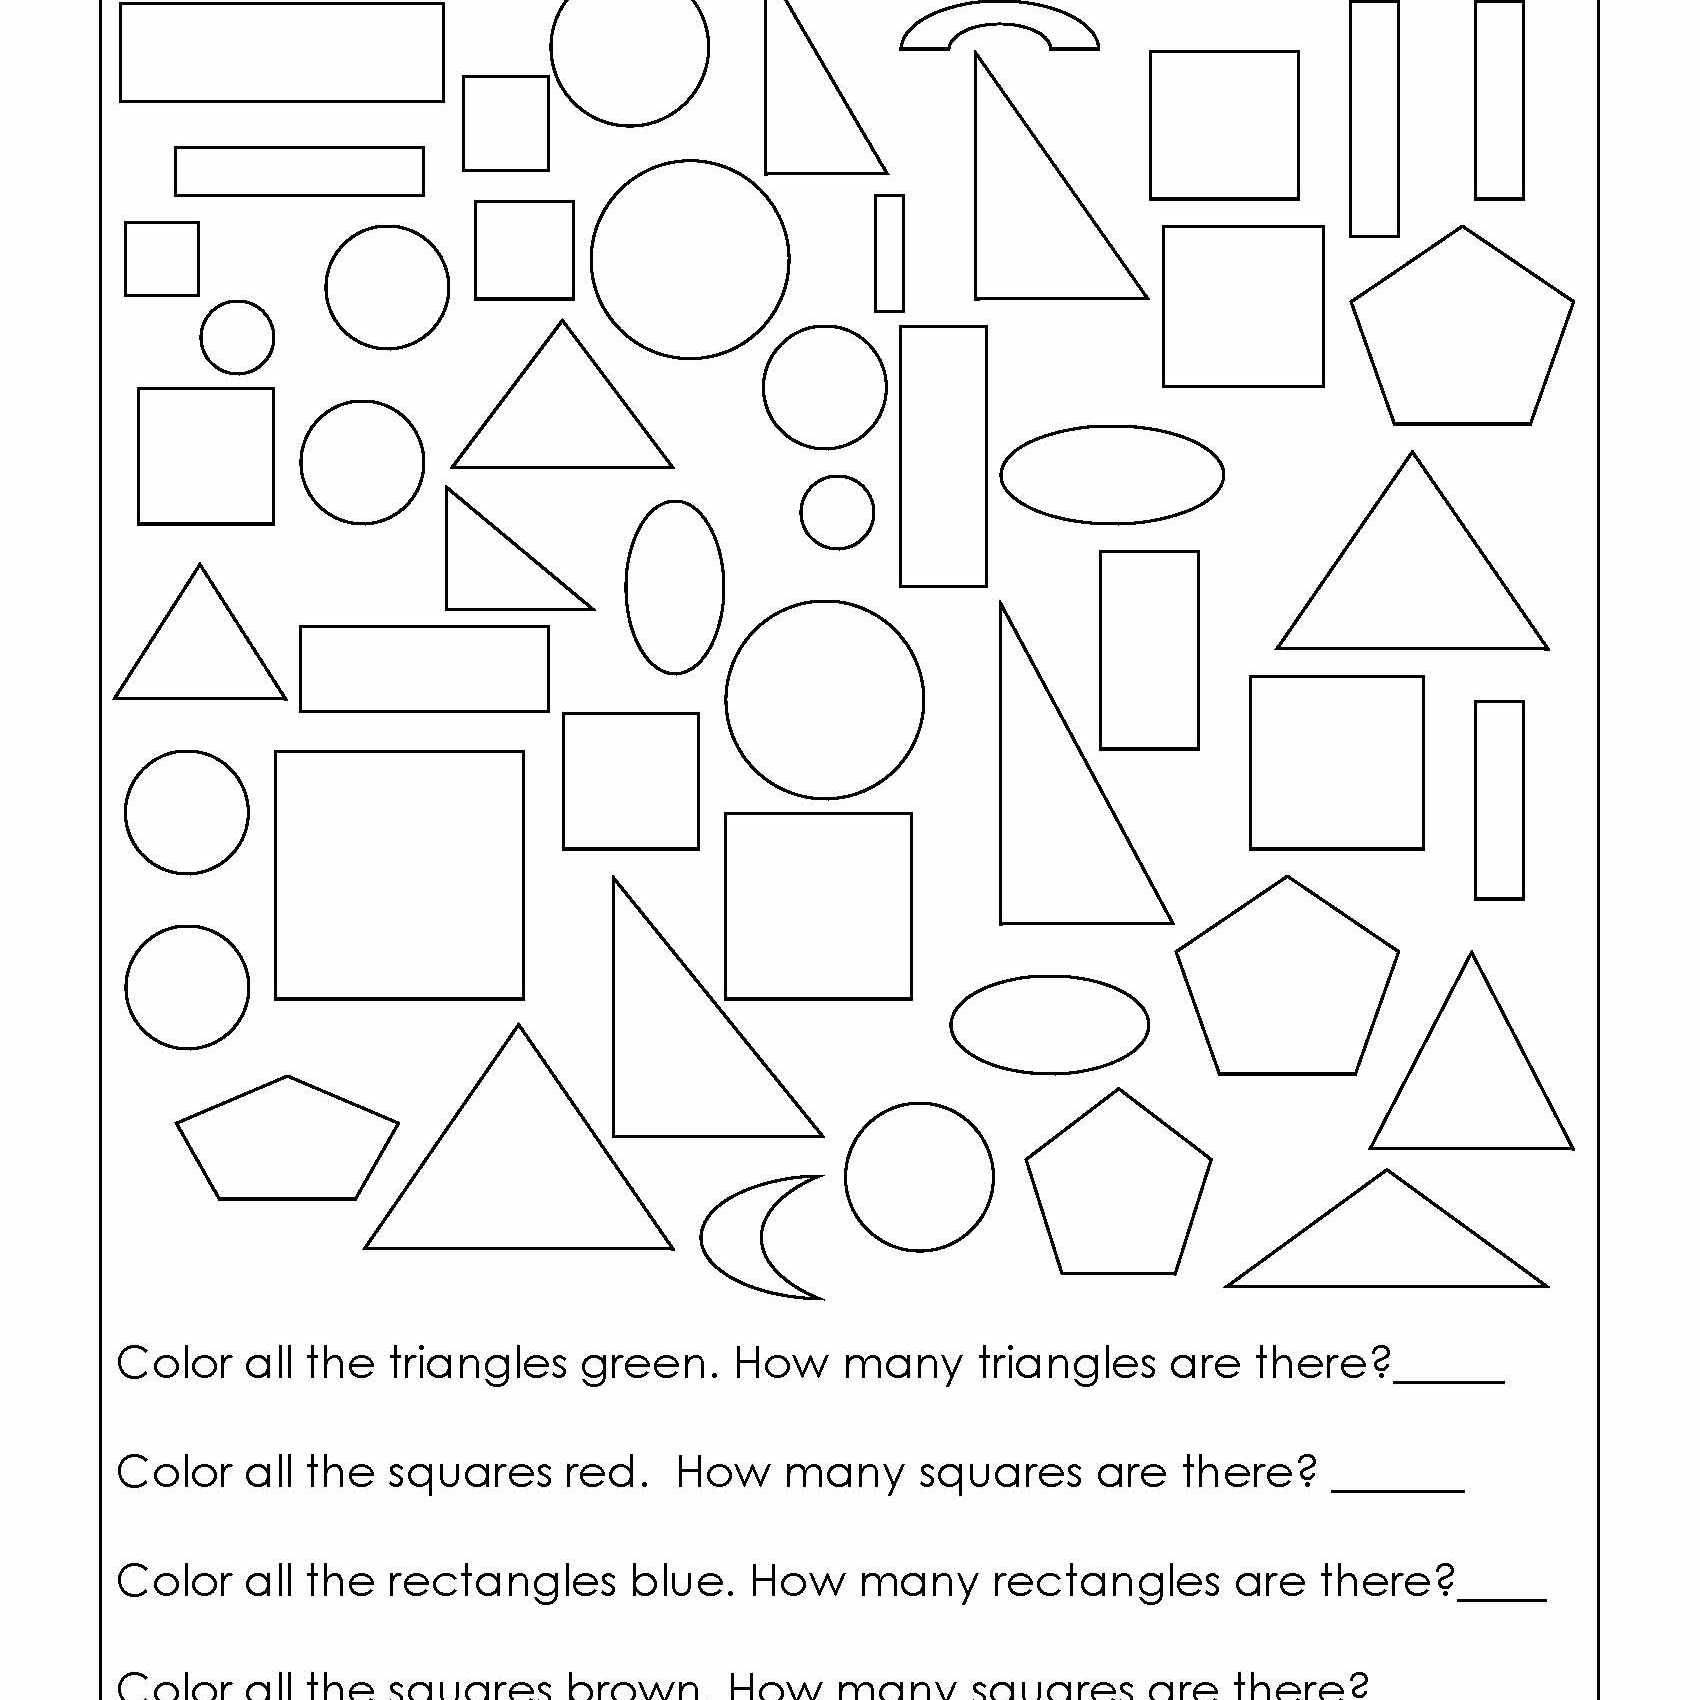 Geometry Worksheets For Students In 1St Grade intended for Homework Pages For 1St Grade